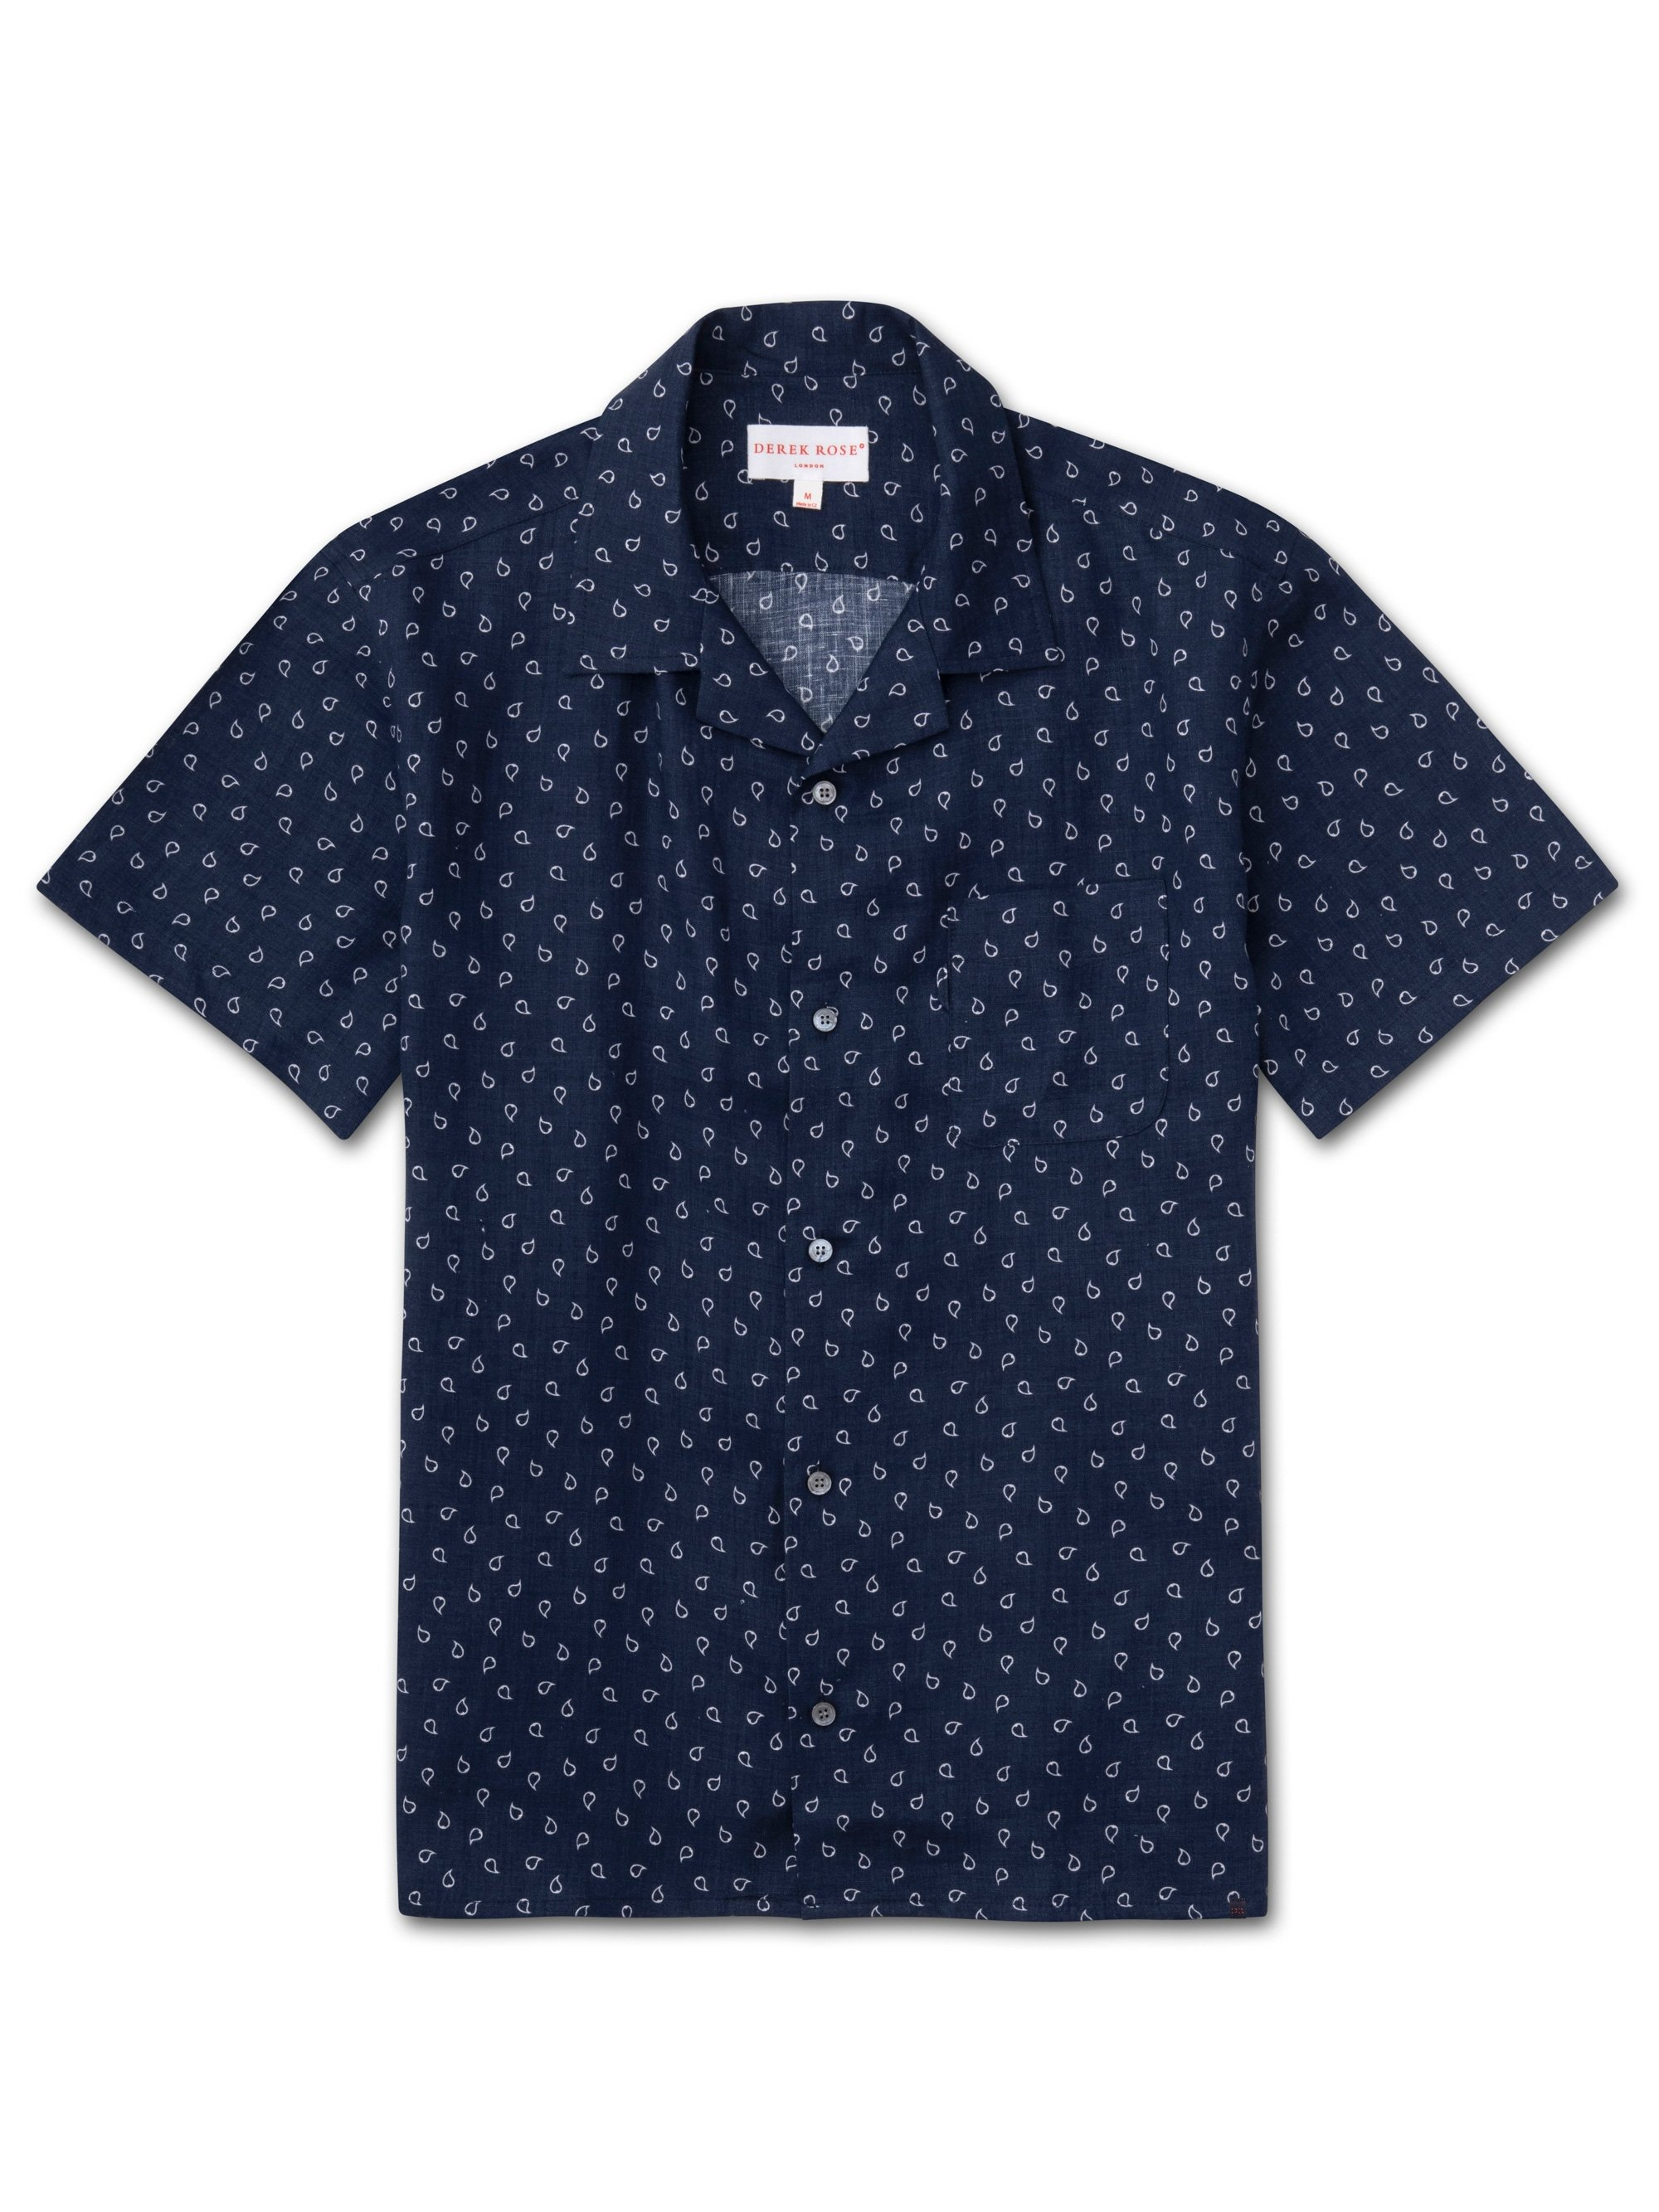 Men's Linen Short Sleeve Shirt Milan 11 Pure Linen Navy